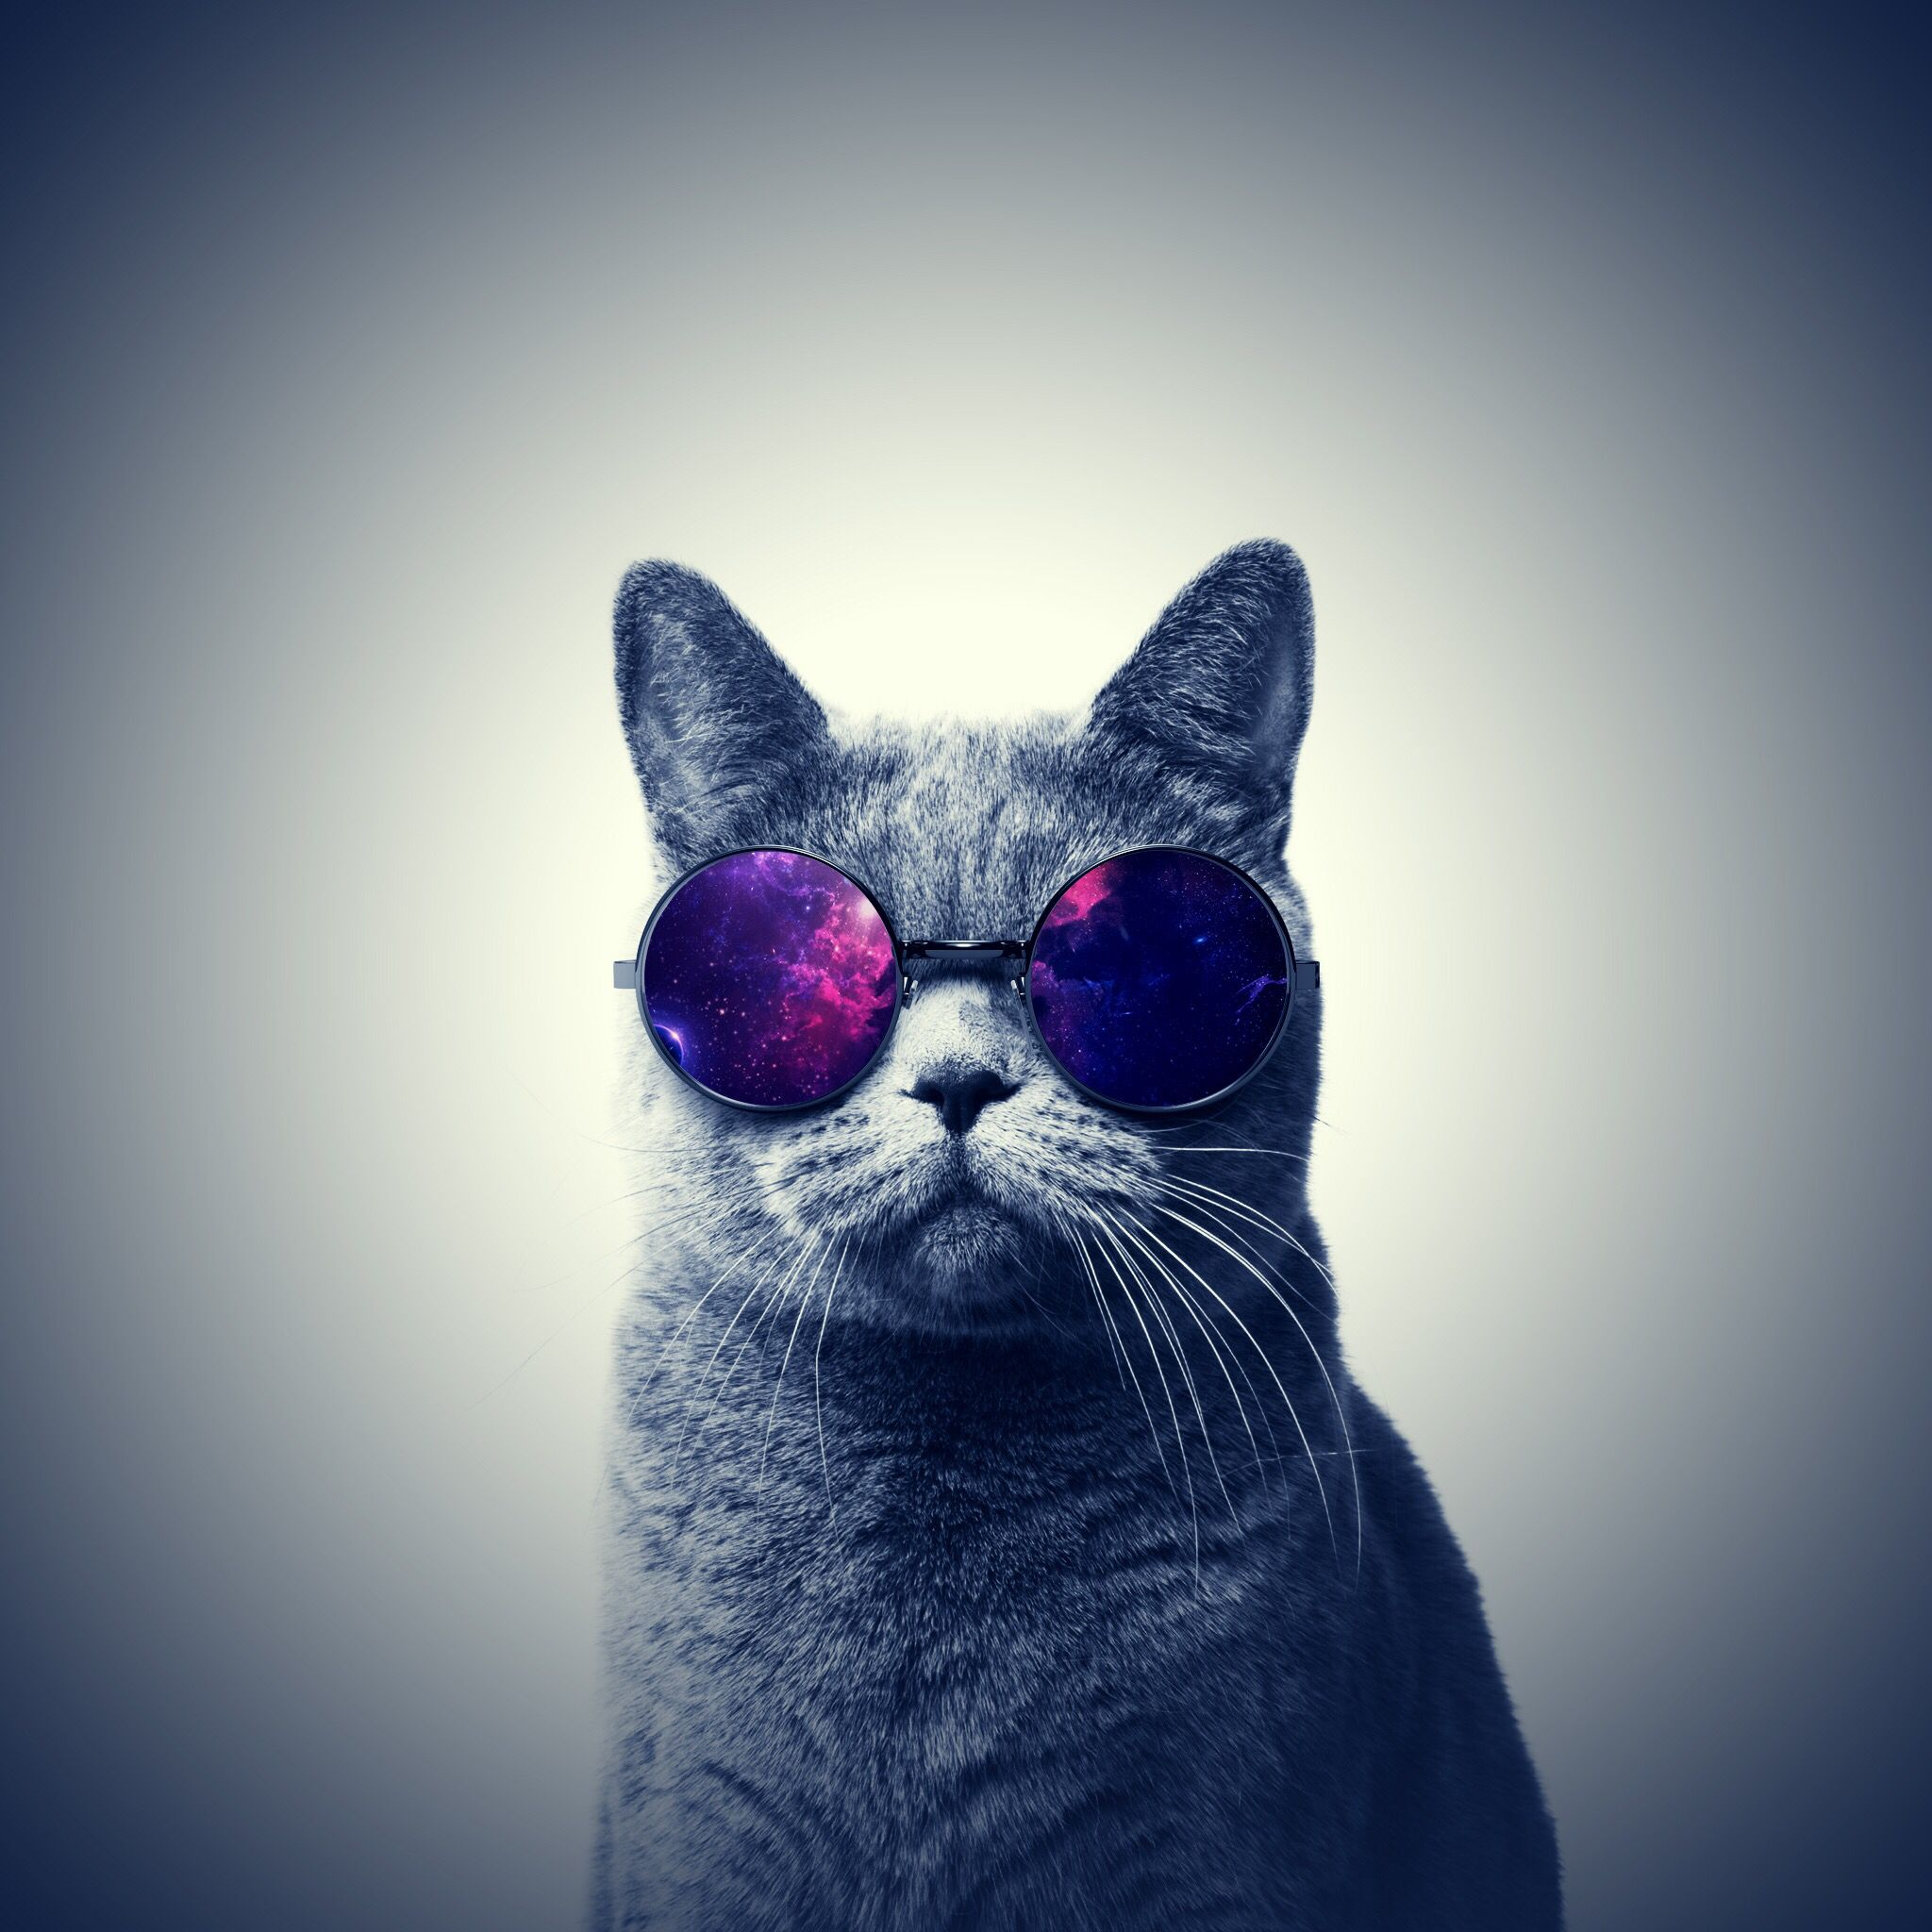 Cat Wallpapers For Iphone: Hipster Wallpaper, Iphone 6